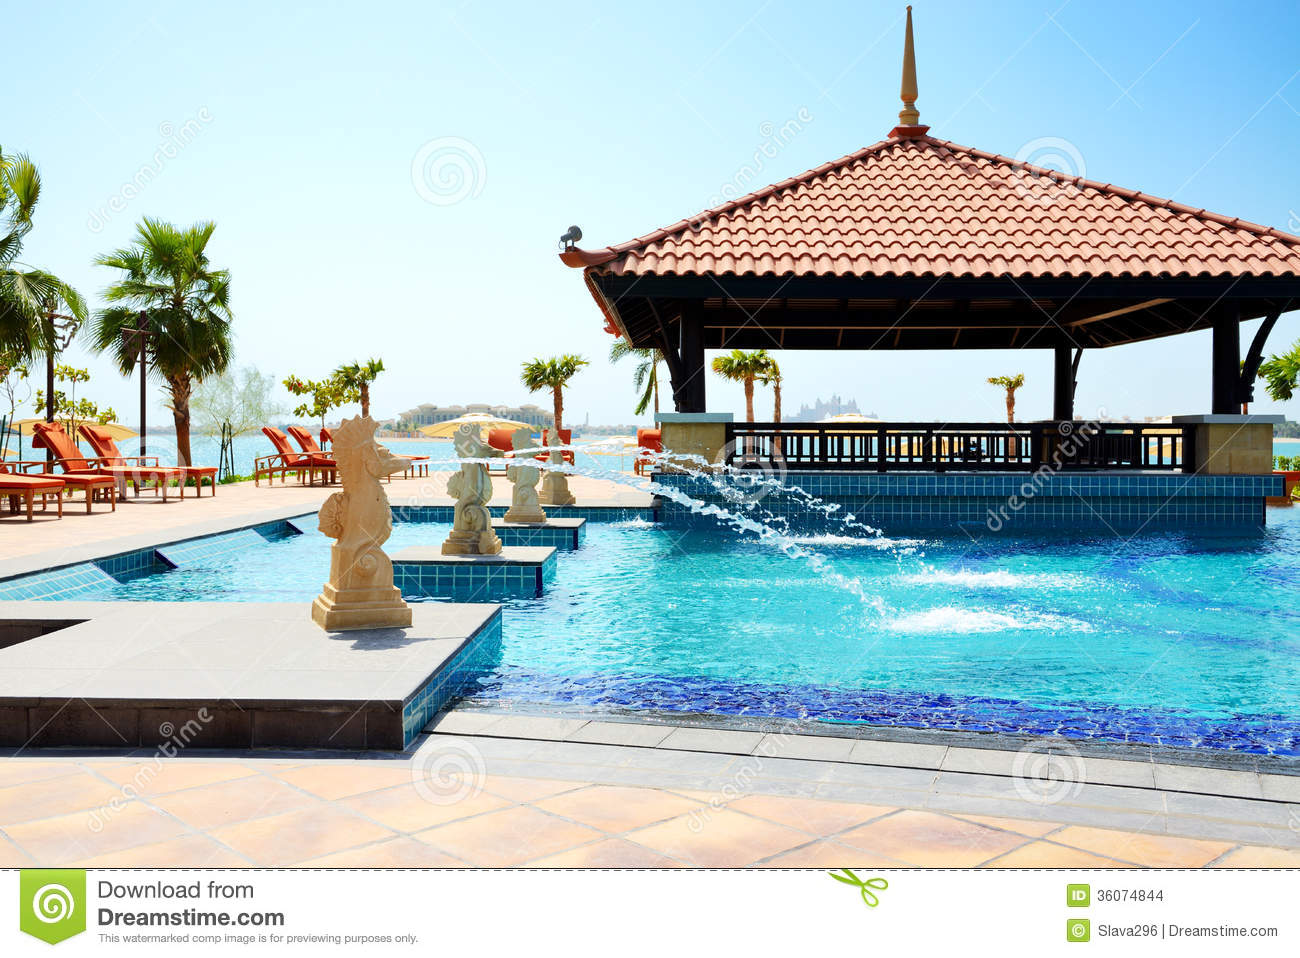 Swimming Pool Near Bar At The Modern Luxury Hotel Stock Photo 29054526